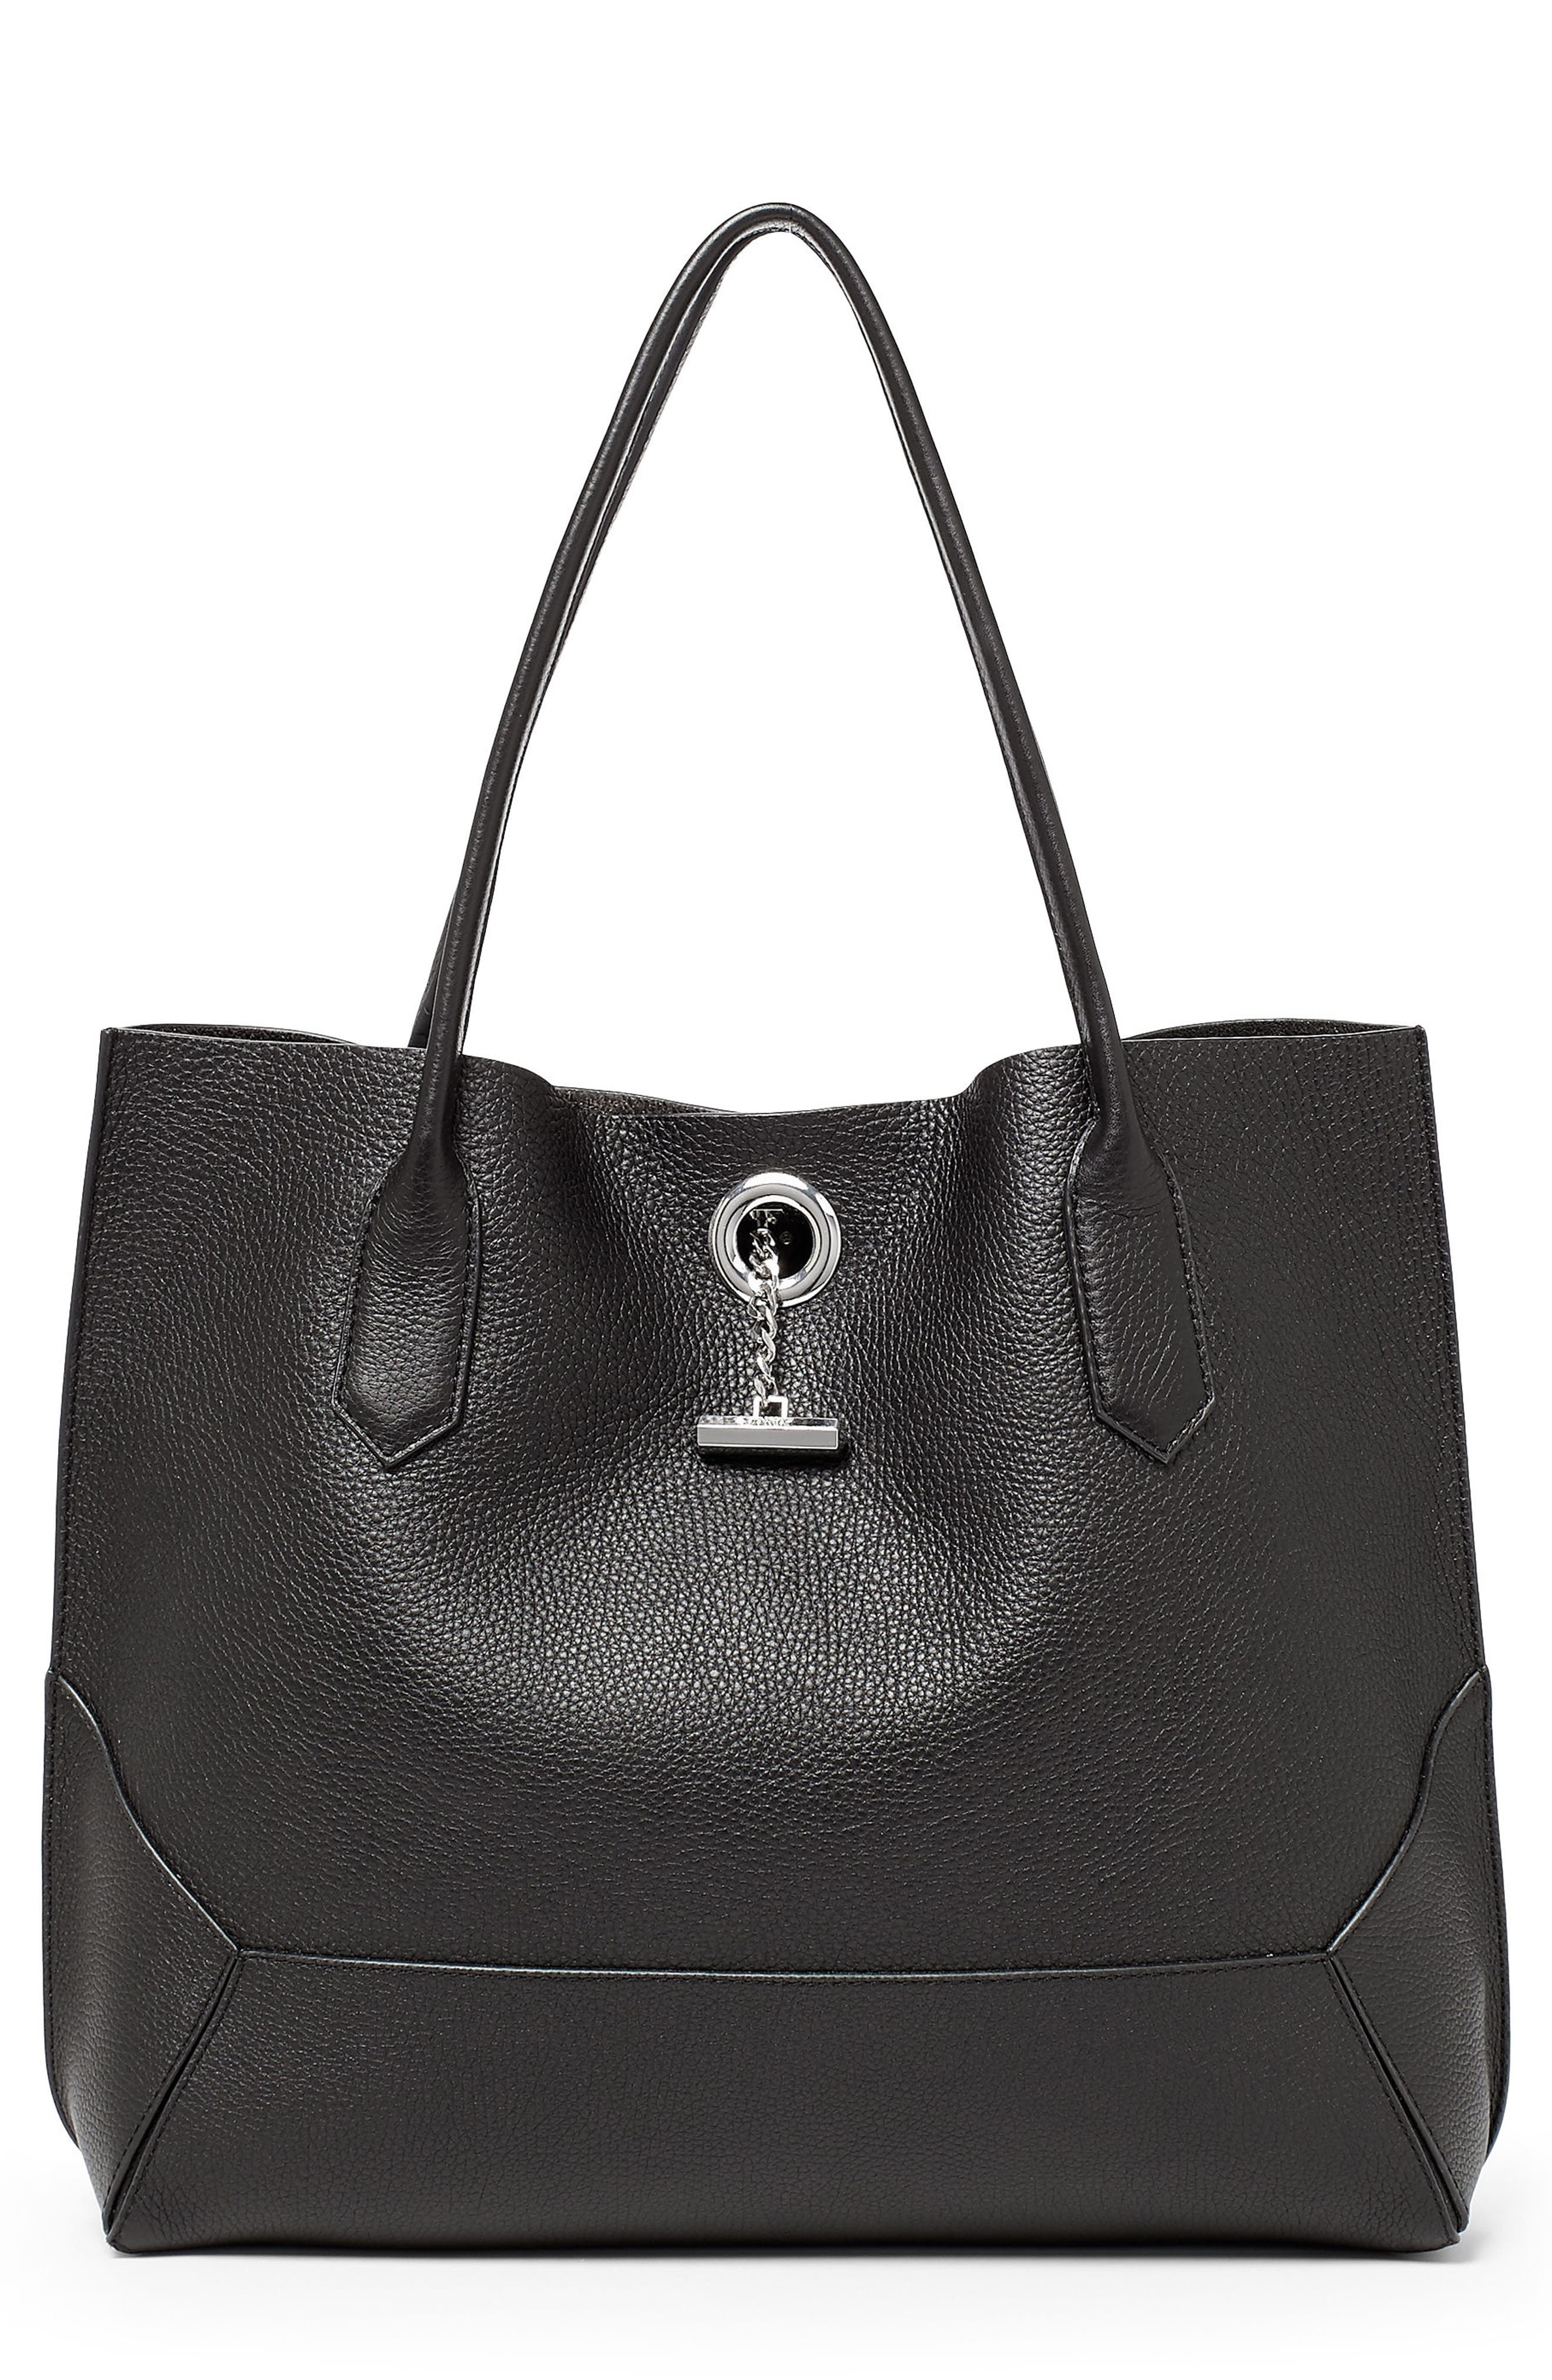 Alternate Image 1 Selected - Botkier Waverly Leather Tote